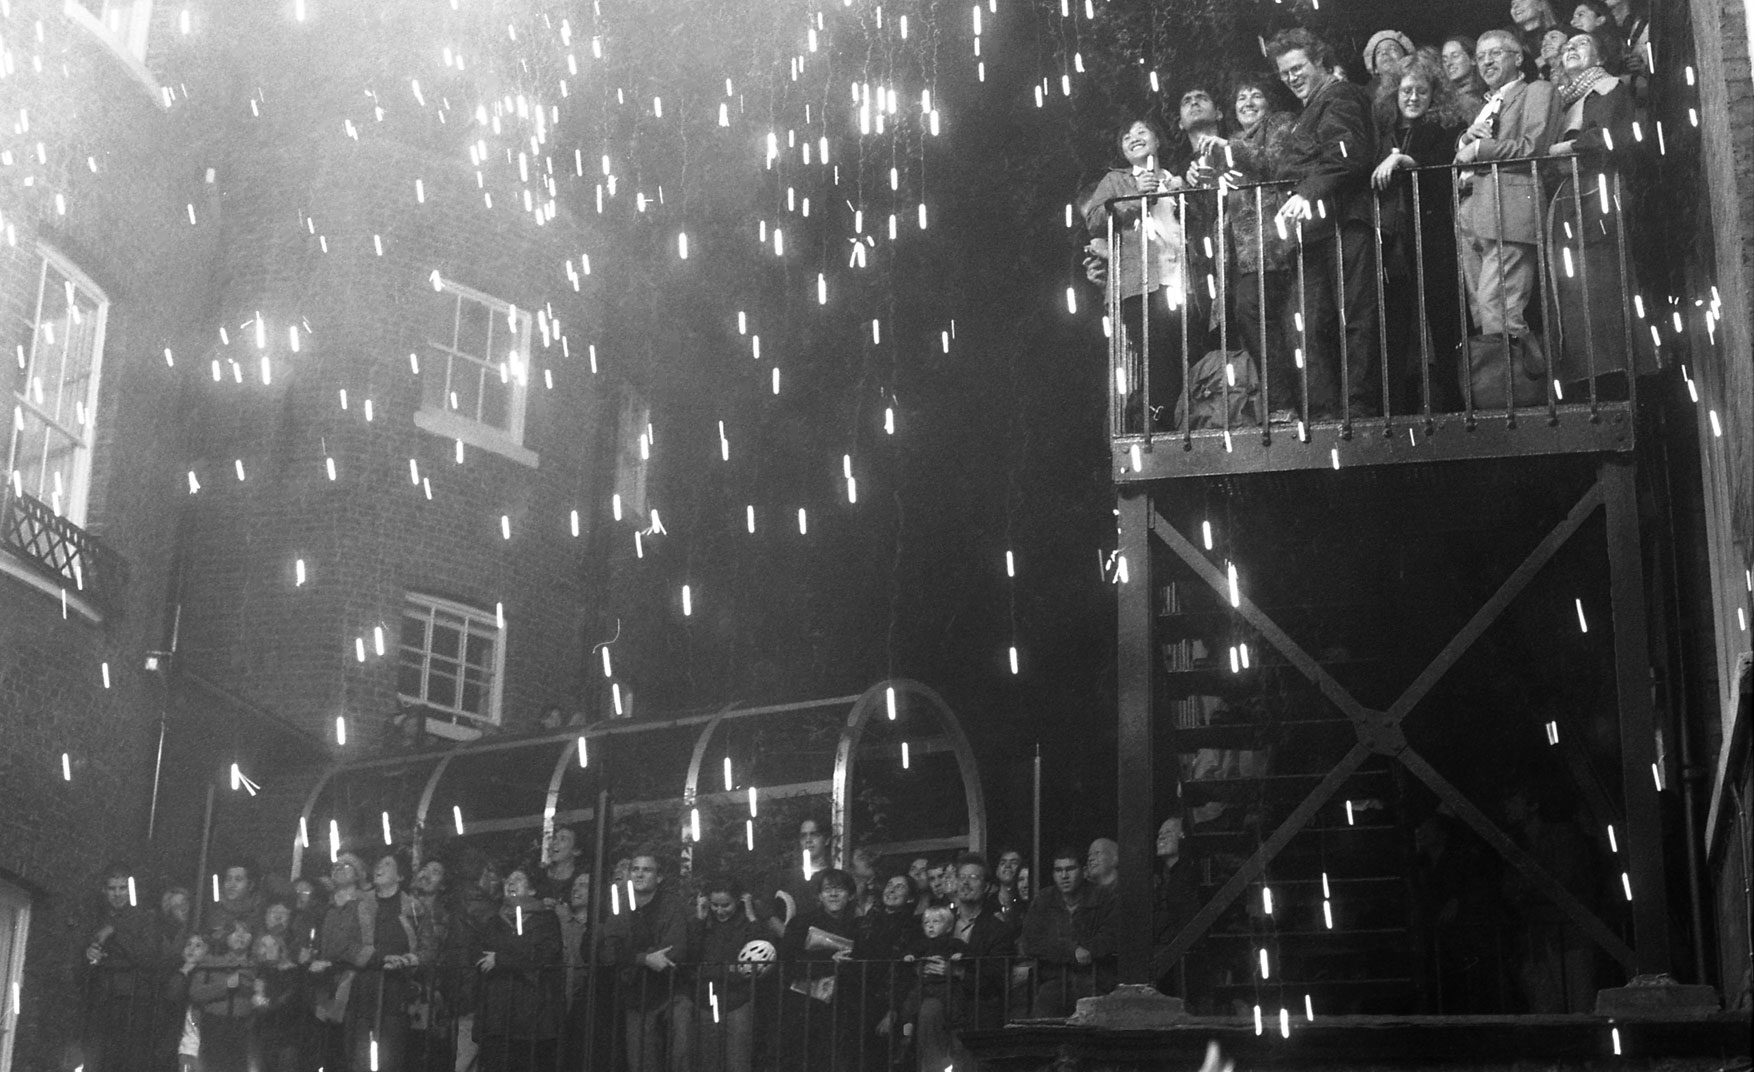 guy fawkes night from Architectural Association